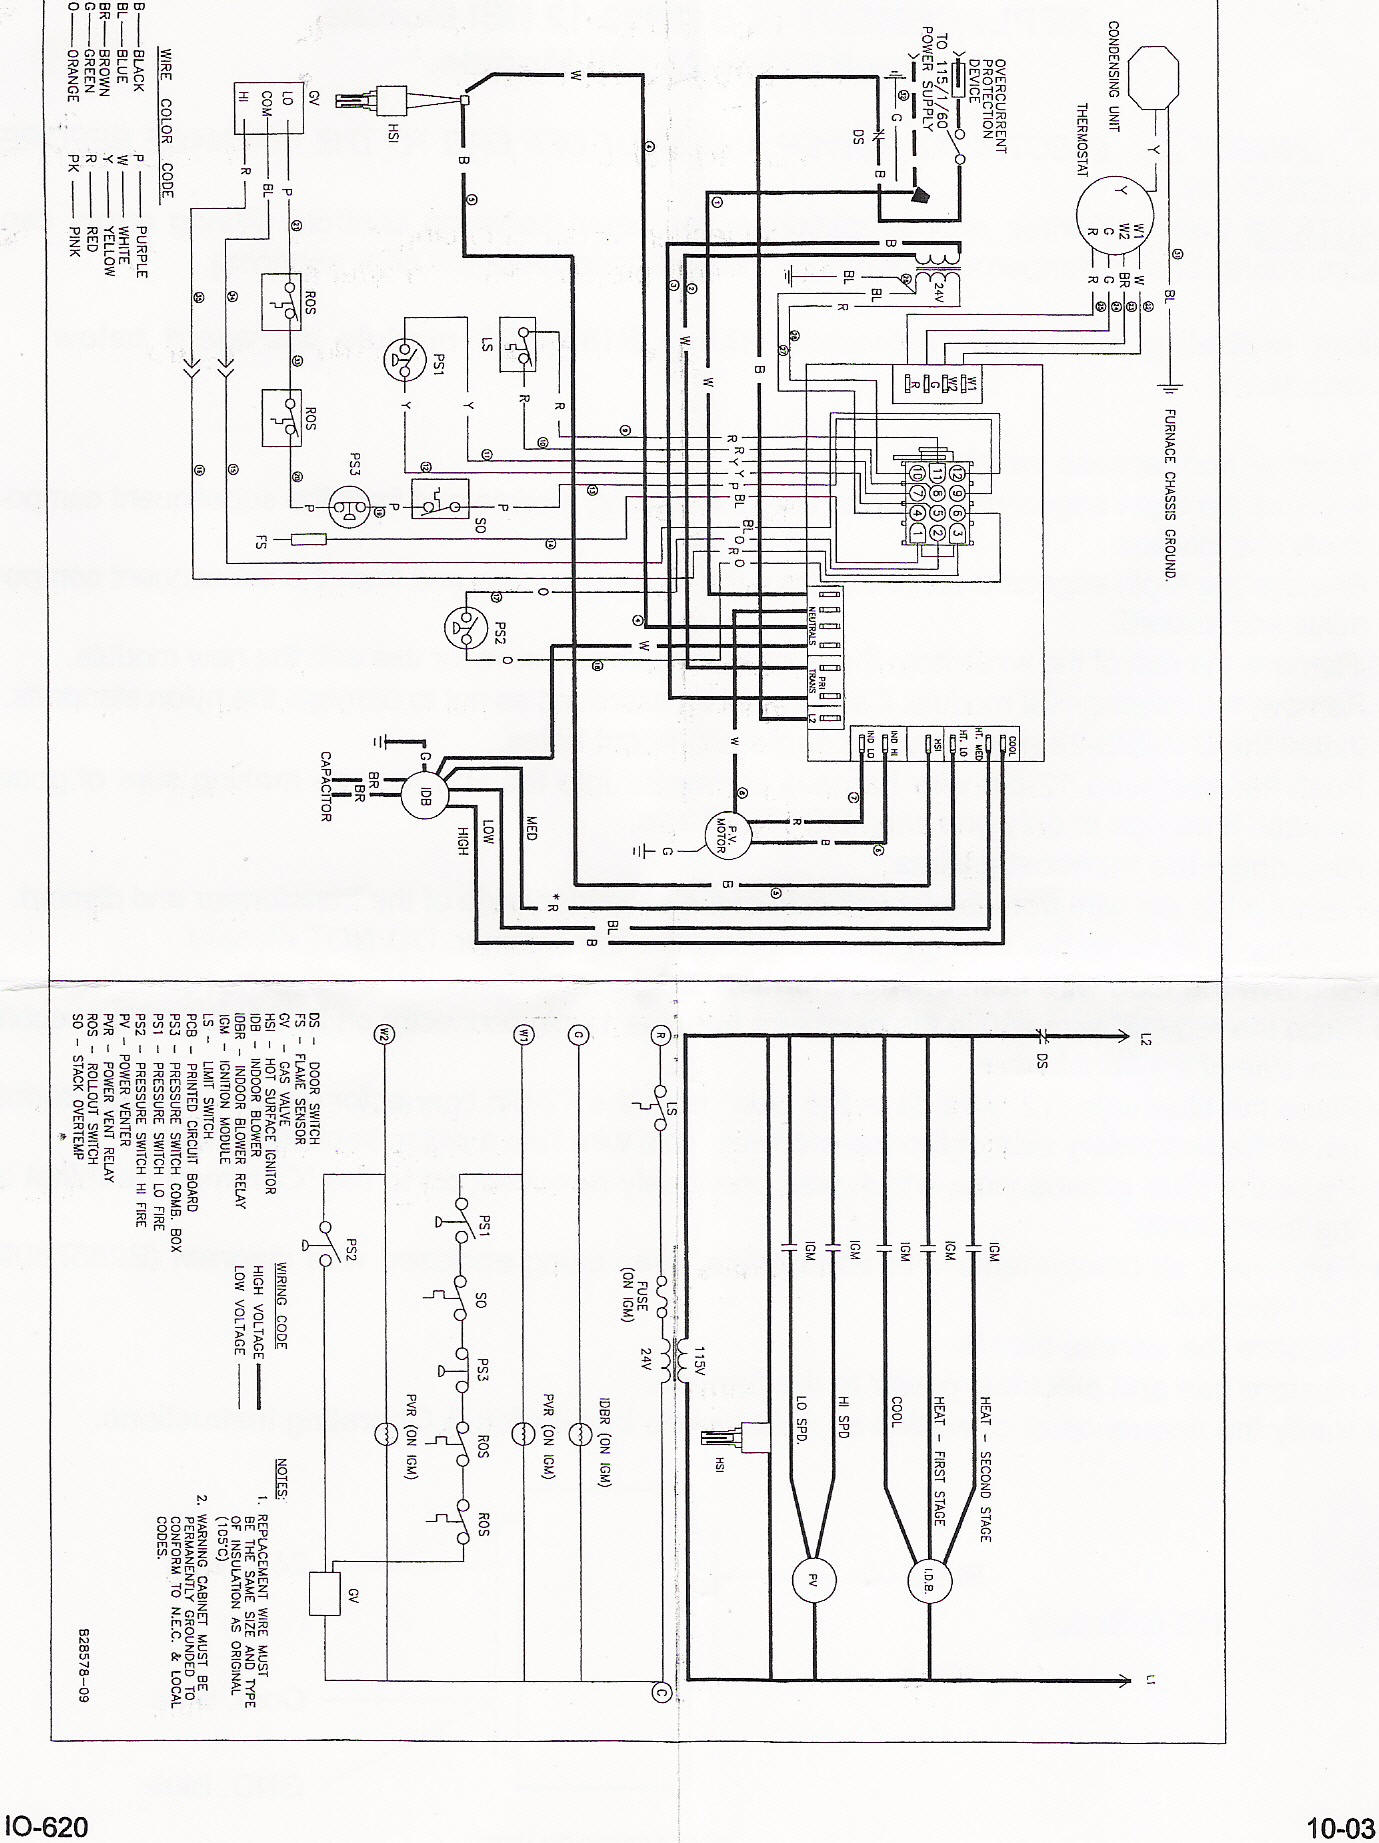 goodma2 instr goodman control board b18099 23 instructions Basic Electrical Wiring Diagrams at readyjetset.co